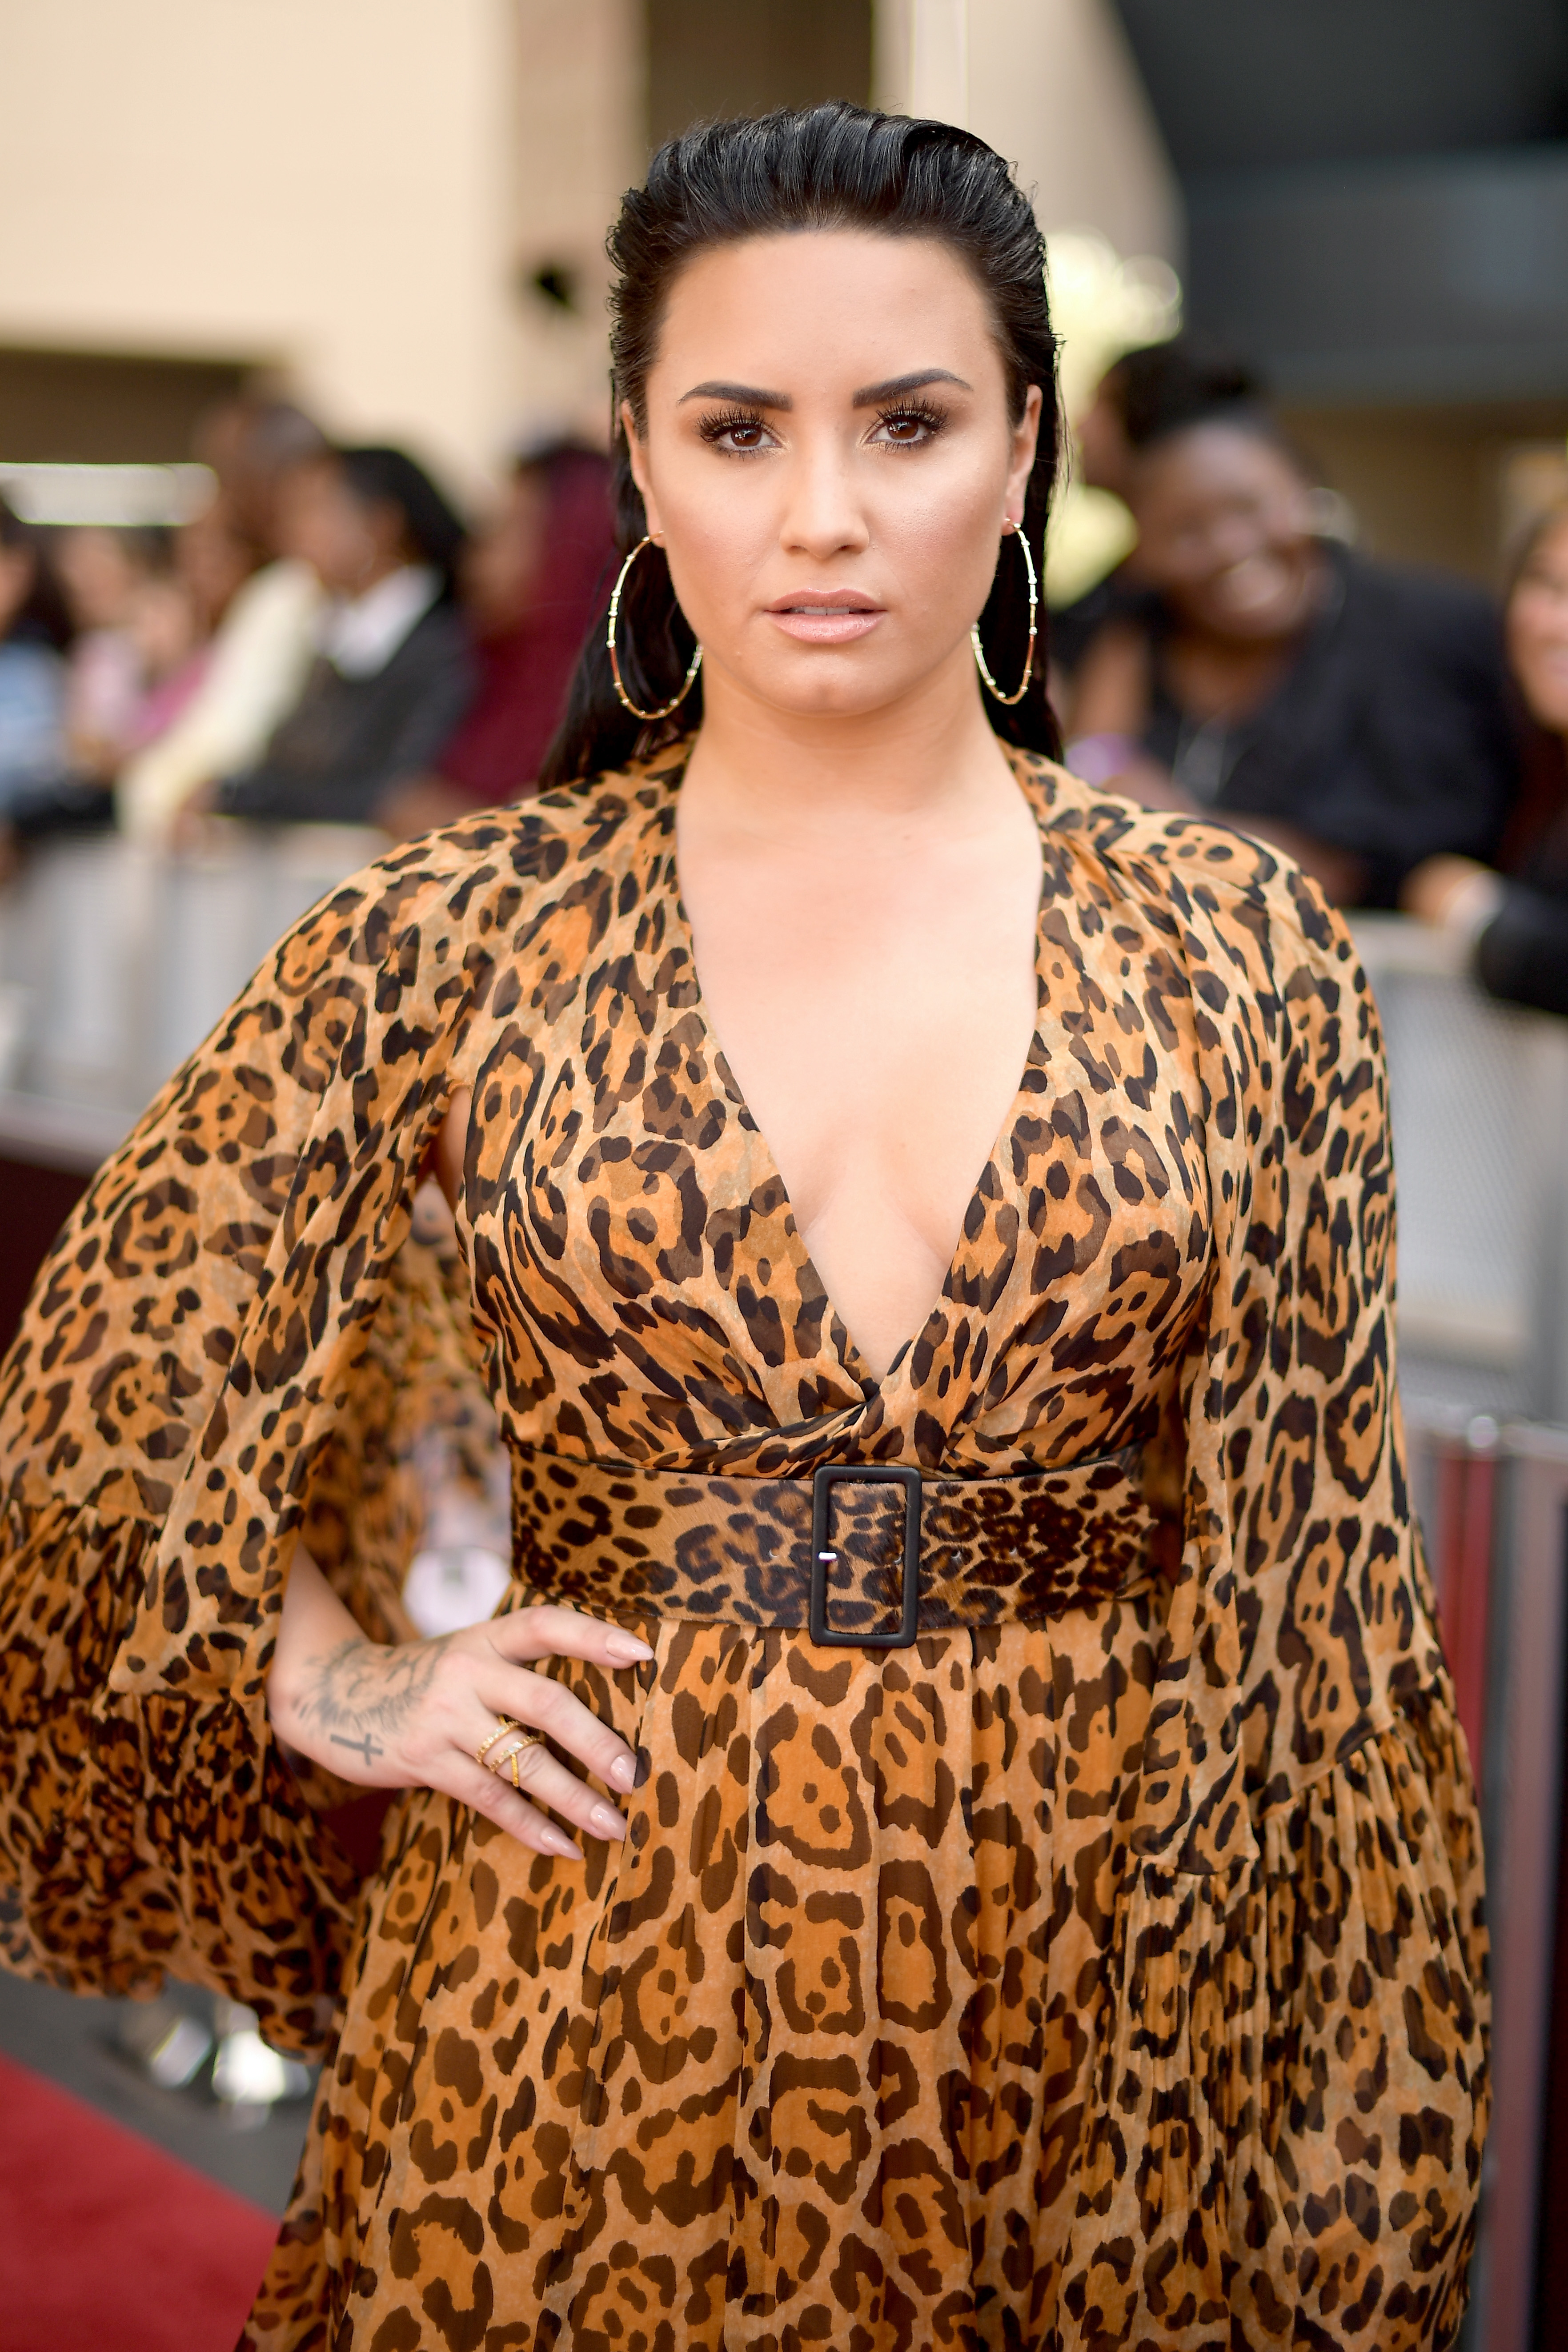 Recording artiste Demi Lovato attends the 2018 Billboard Music Awards in Las Vegas. (Getty Images)